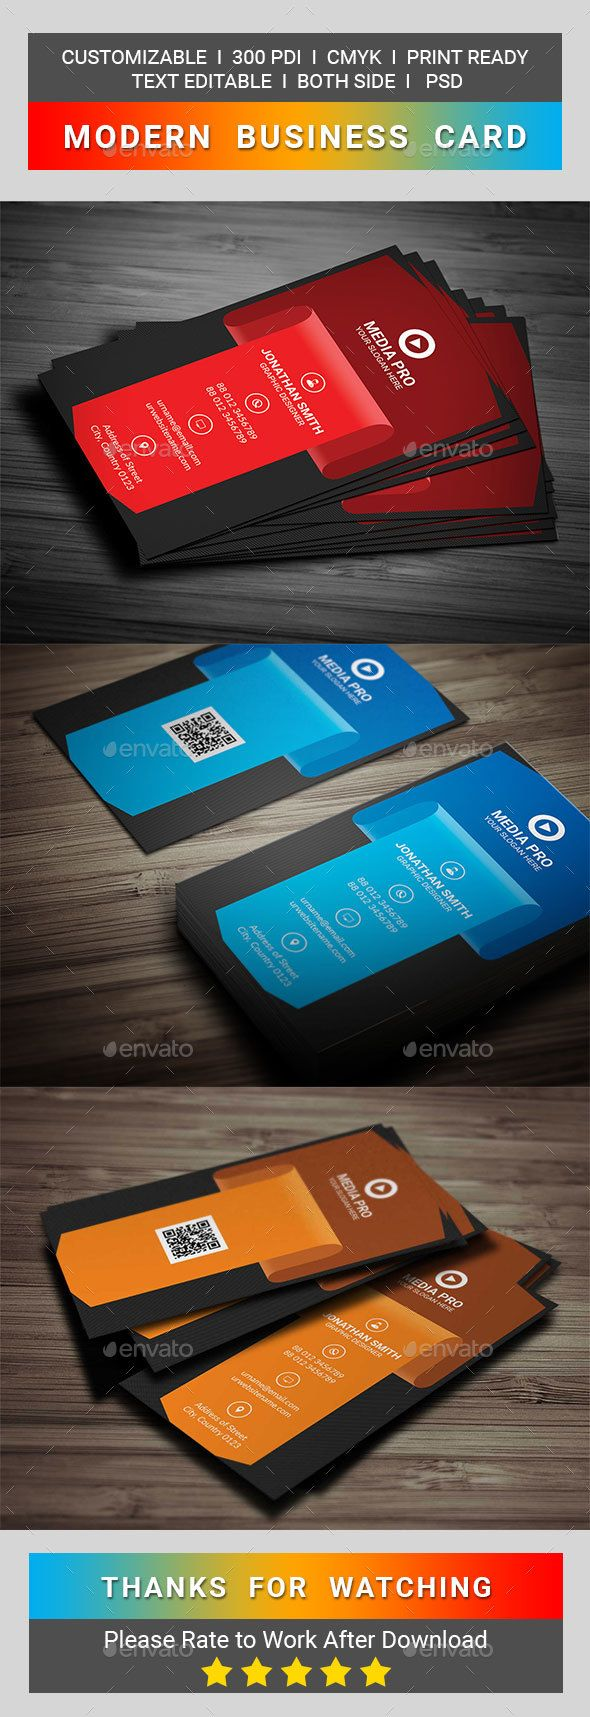 Modern business card business cards print templates and card printing modern business card reheart Images